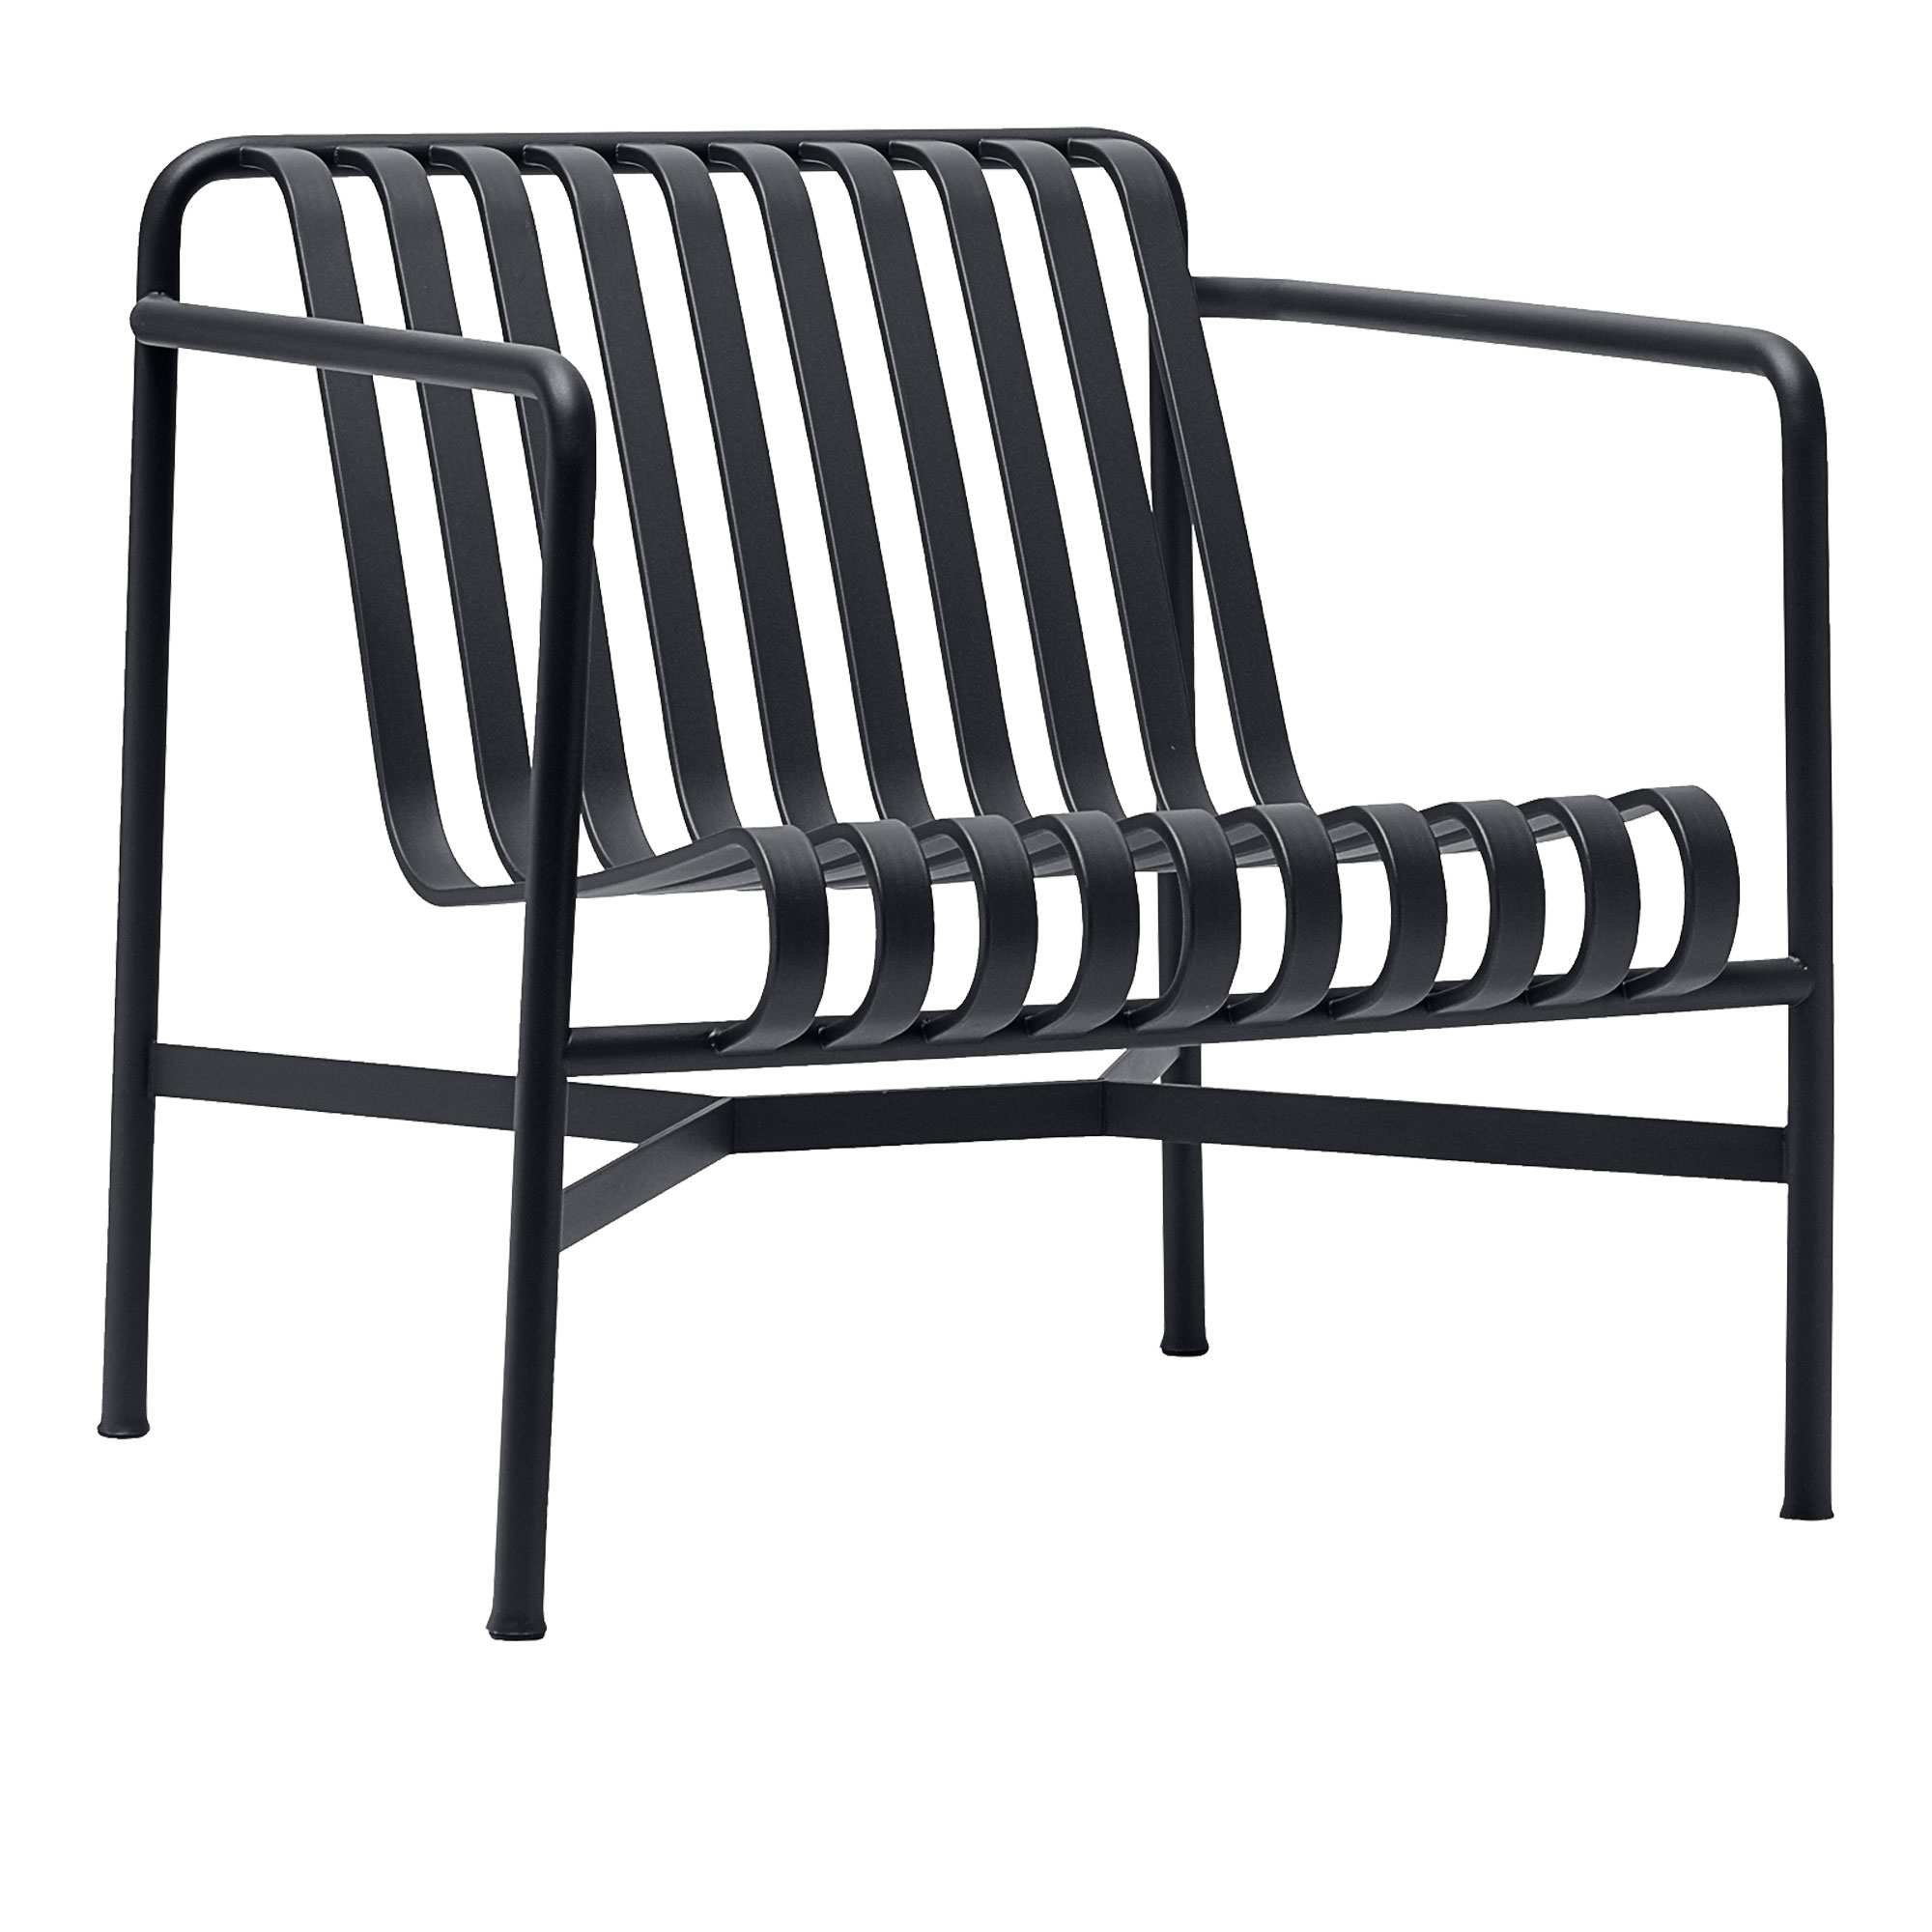 Köp Palissade Lounge Chair Low Anthracite från HAY